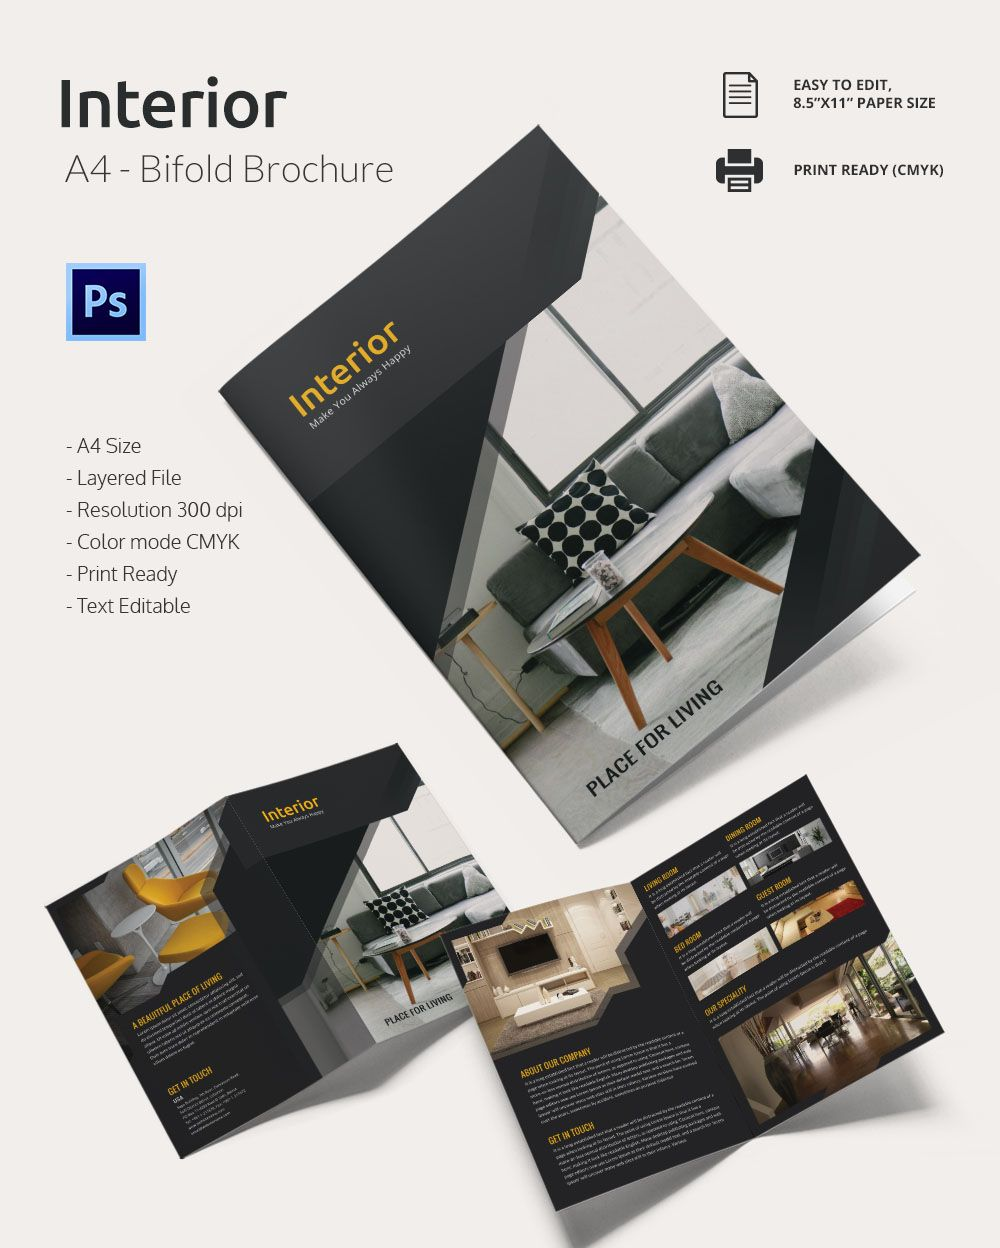 Interior Design Brochure 20 Free Psd Eps Indesign Format Template Pinterest Brochures